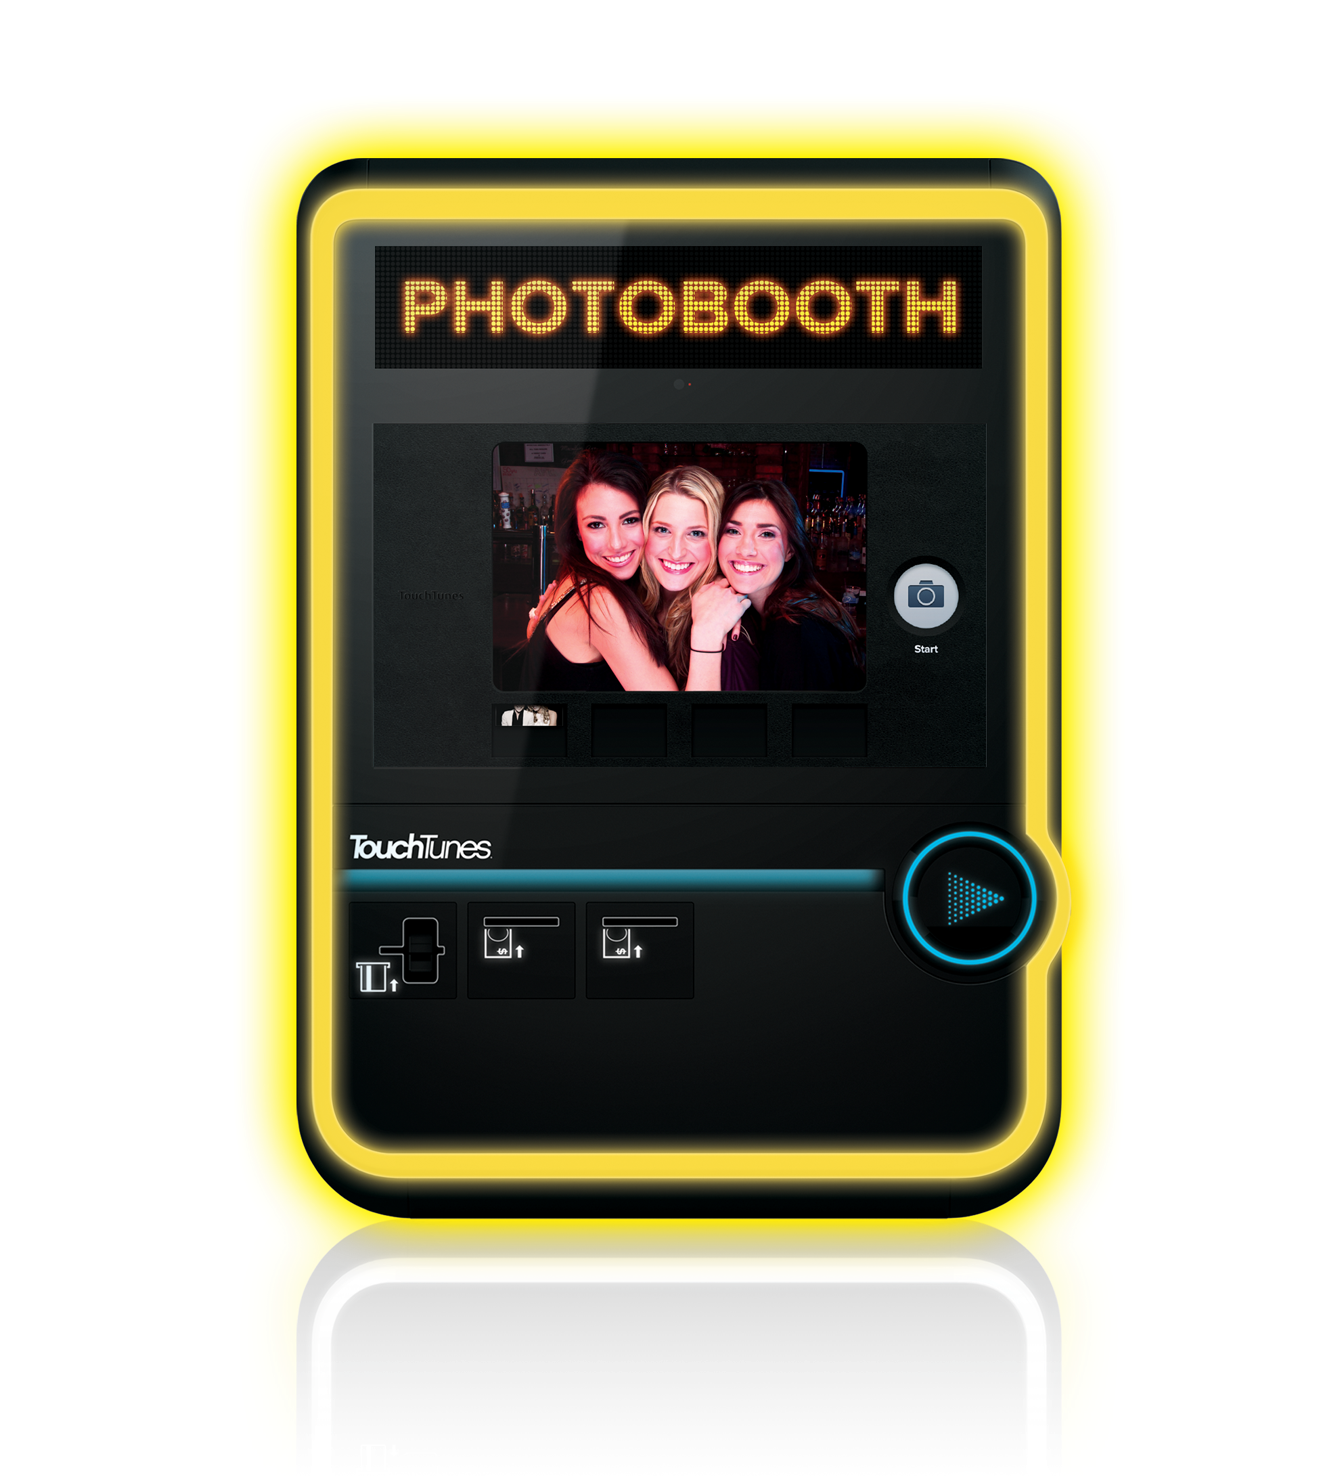 TouchTunes Virtuo Jukebox Photobooth